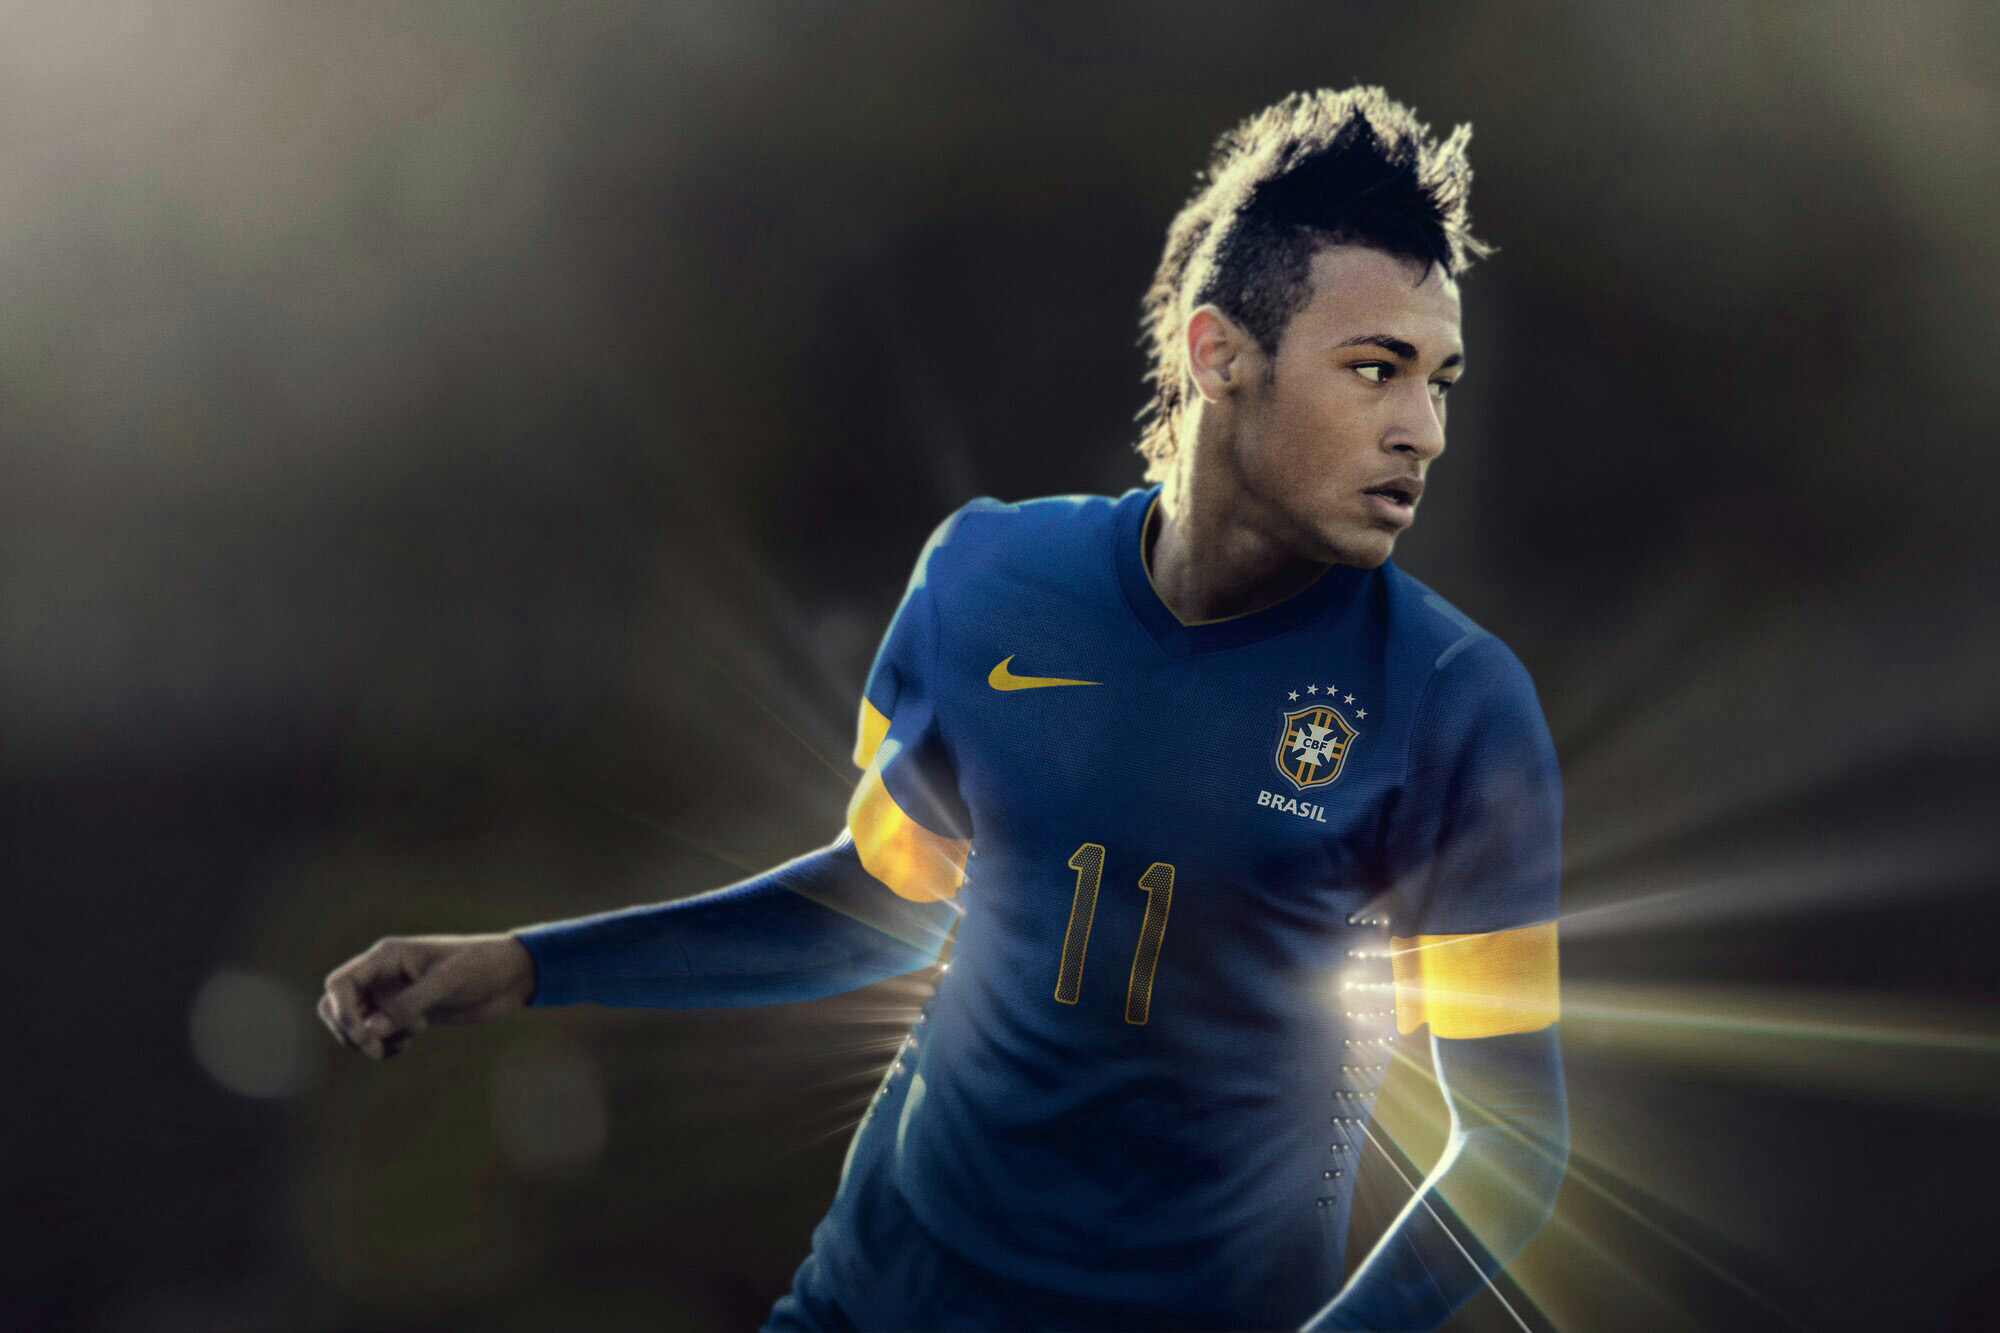 brazil neymar wallpaper 2014 - photo #21